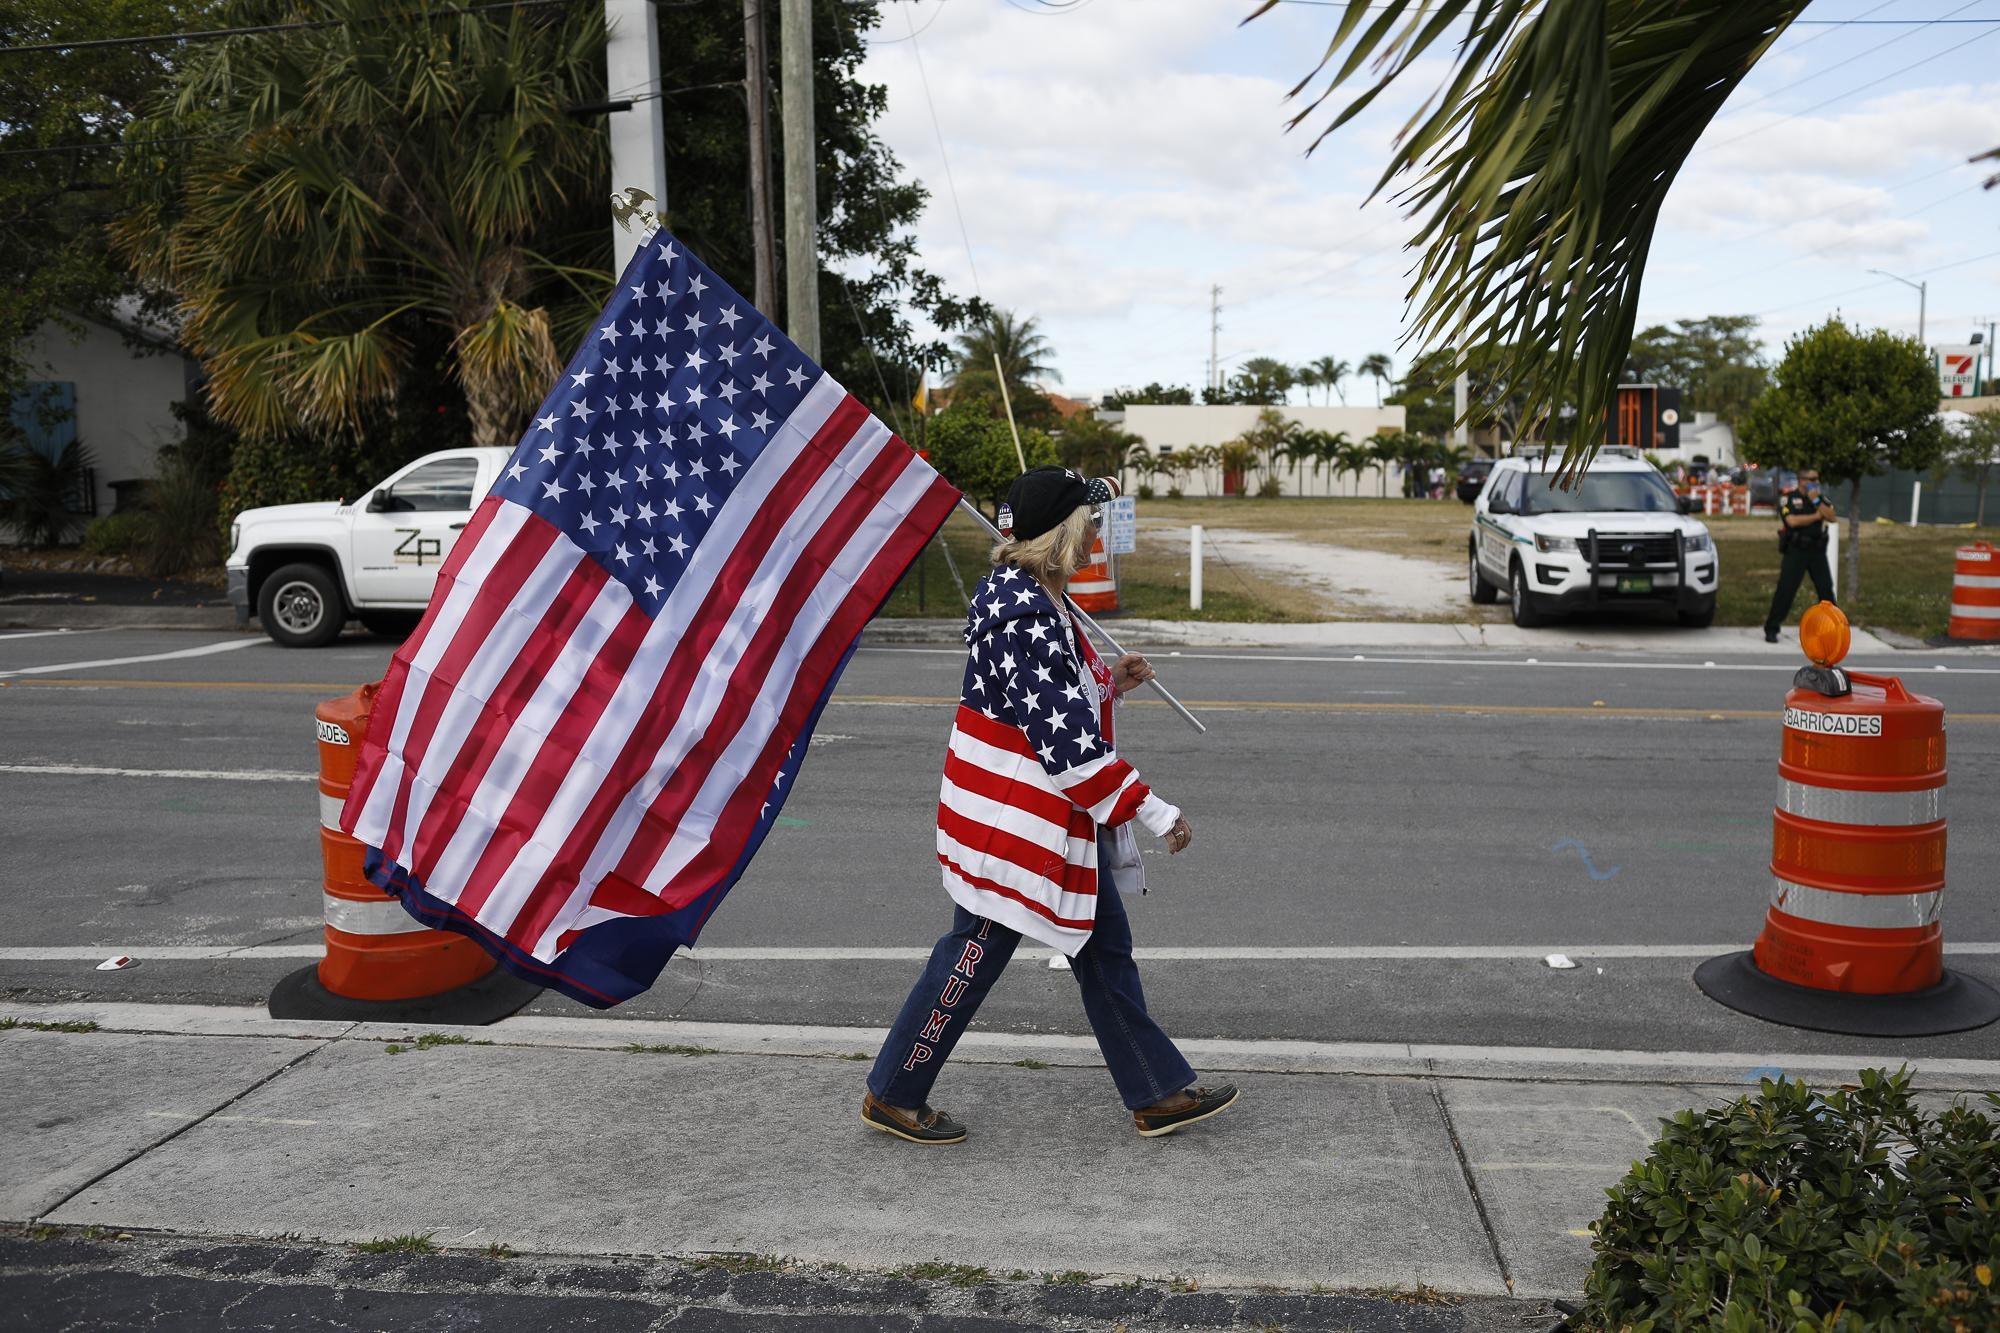 Supporters of President Donald Trump stand near the road as he arrives in West Palm Beach, Florida, U.S., January 20, 2021. REUTERS/Marco Bello